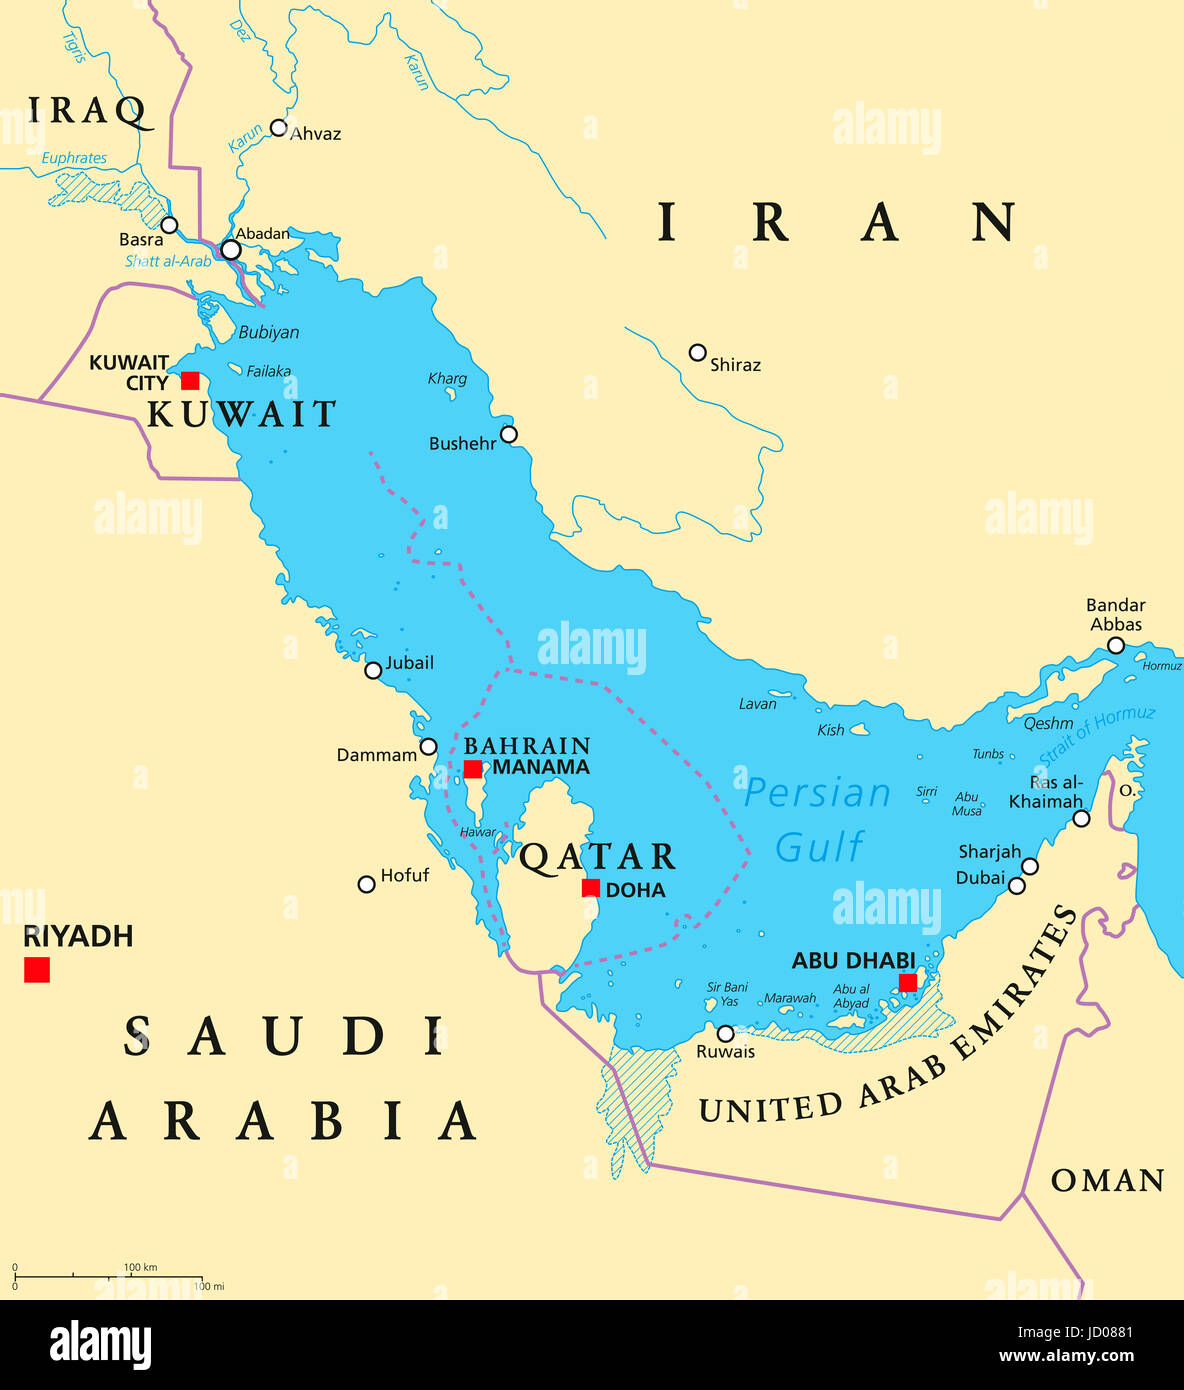 Persian gulf region countries political map iran iraq kuwait persian gulf region countries political map iran iraq kuwait qatar bahrain united arab emirates saudi arabia oman illustration english gumiabroncs Images